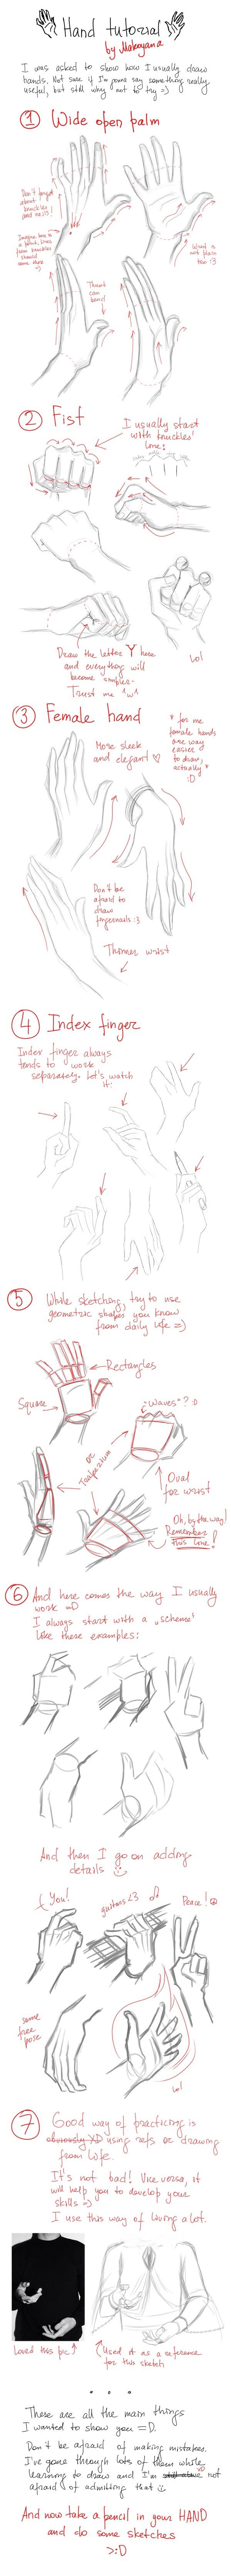 Hand reference pose body cartoon